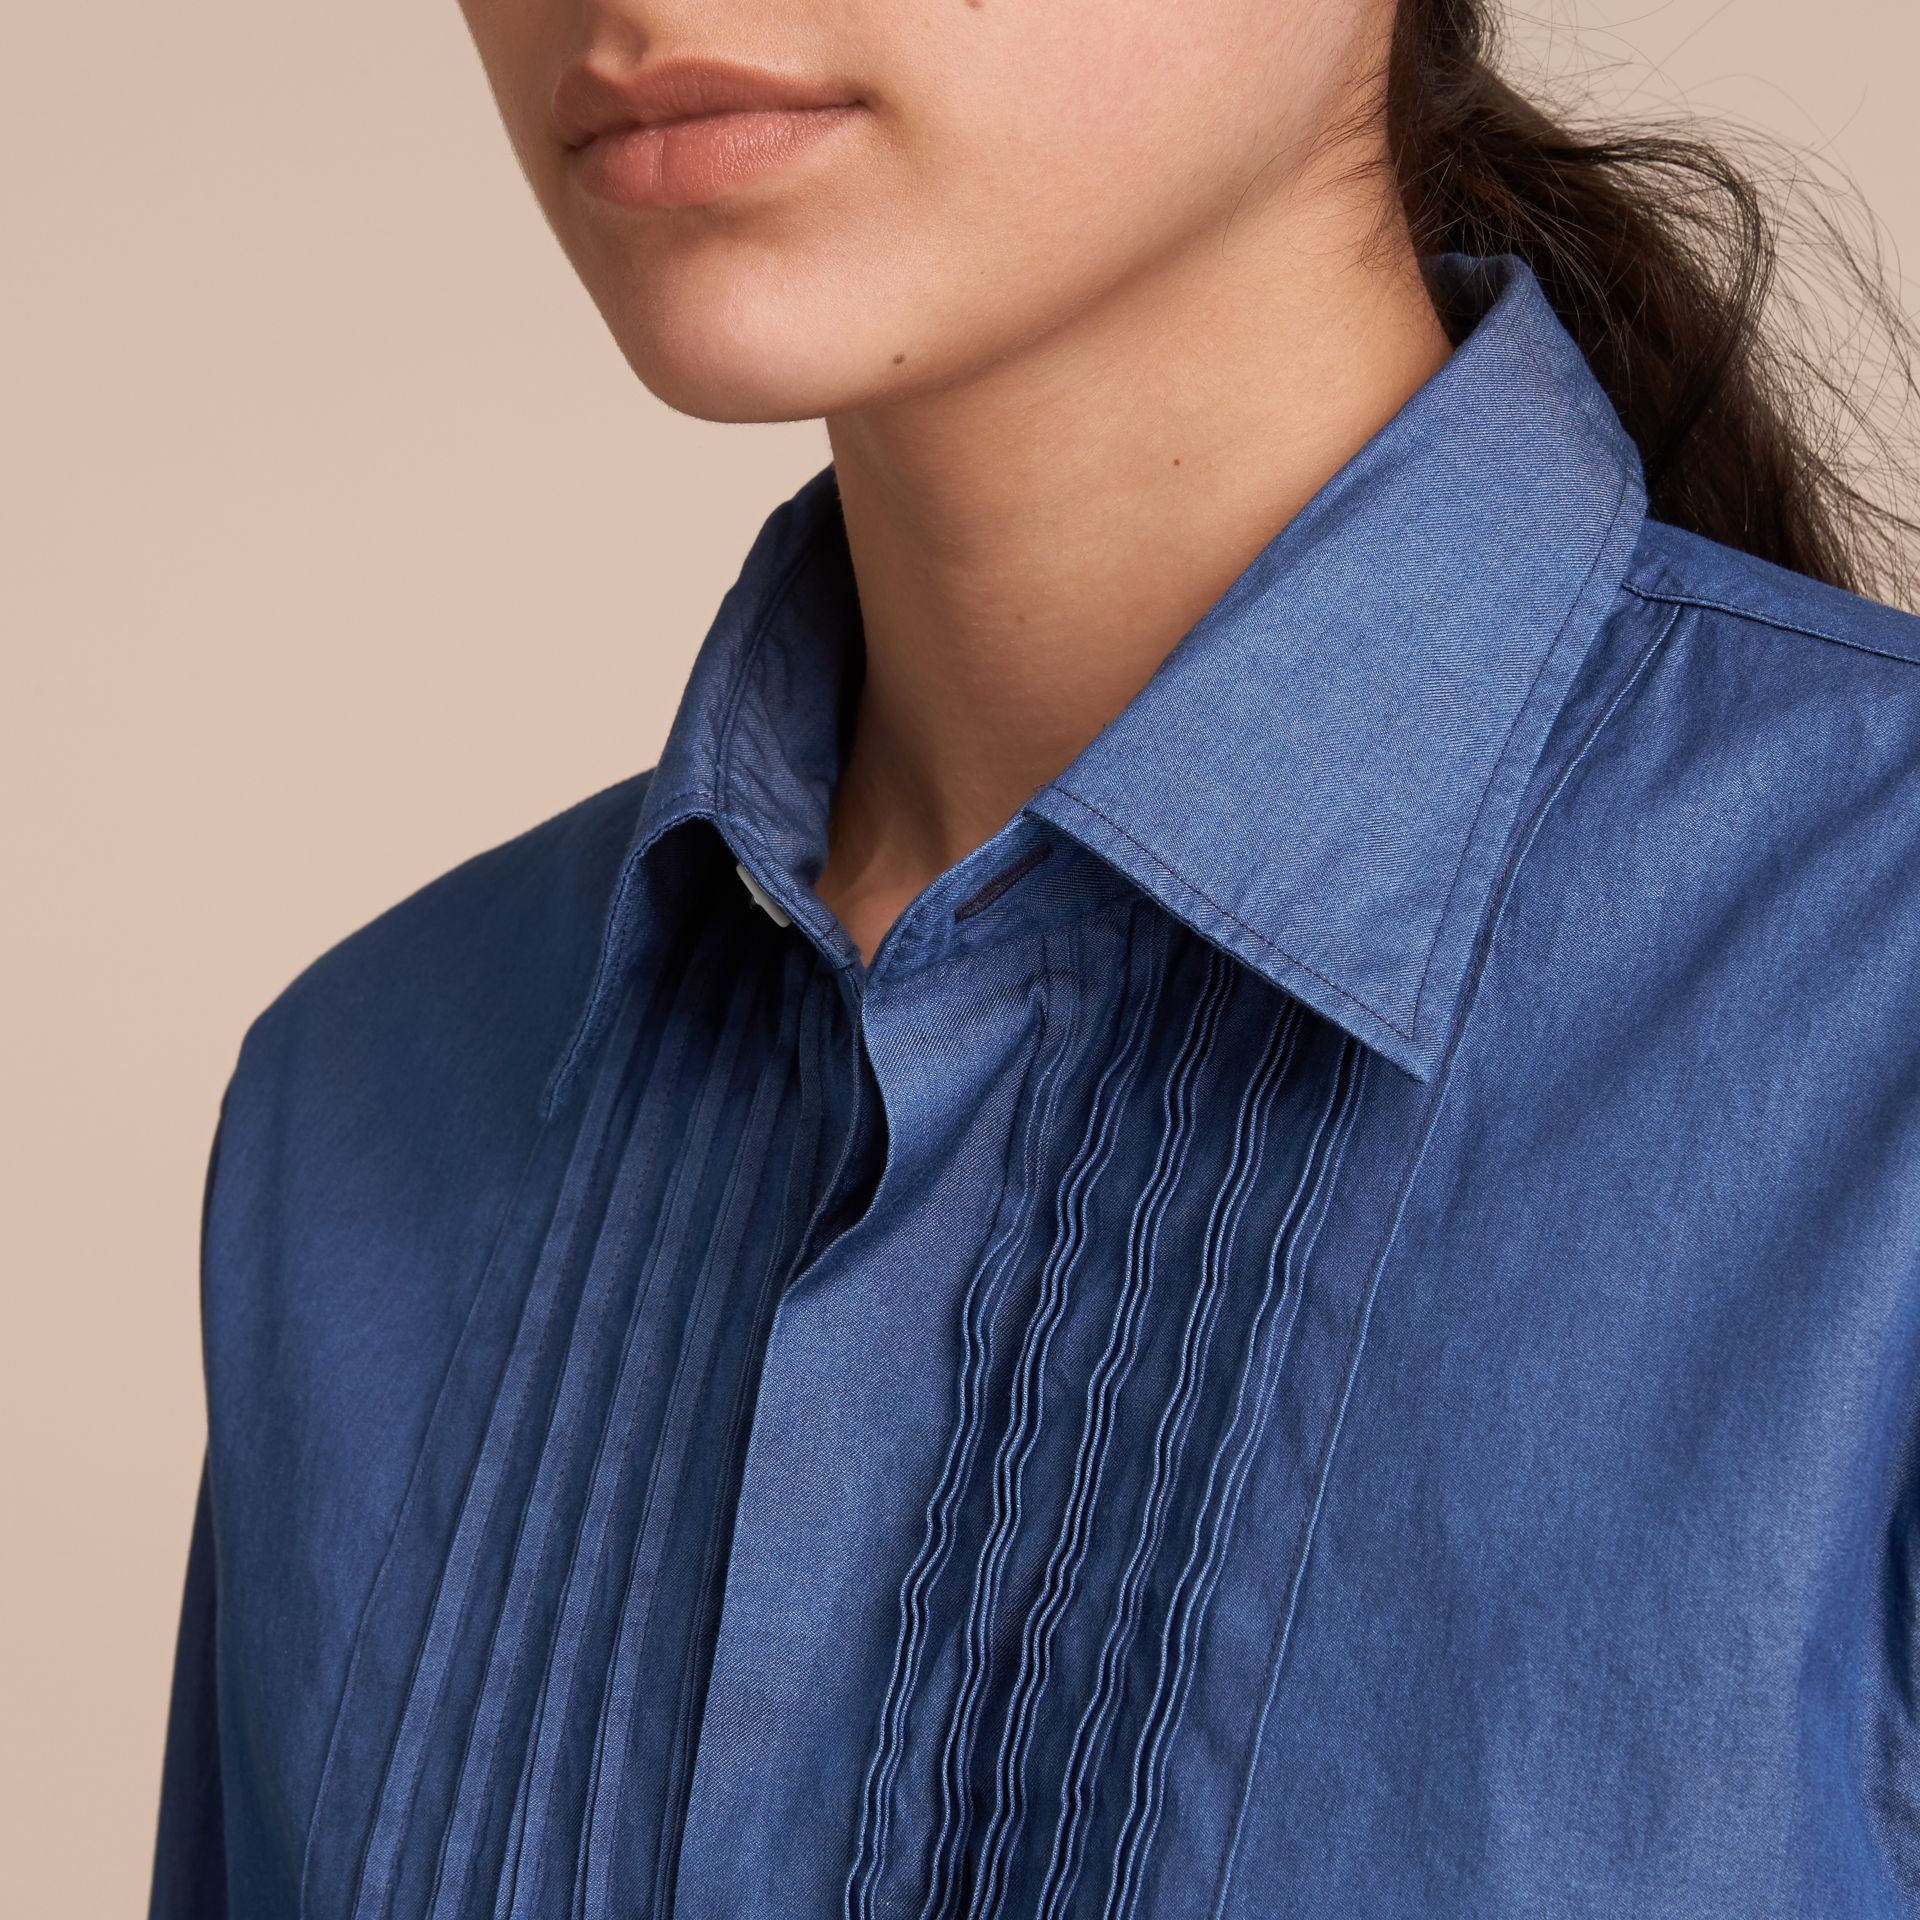 Unisex Double-cuff Pintuck Bib Cotton Shirt in Denim Blue - Women | Burberry - gallery image 5